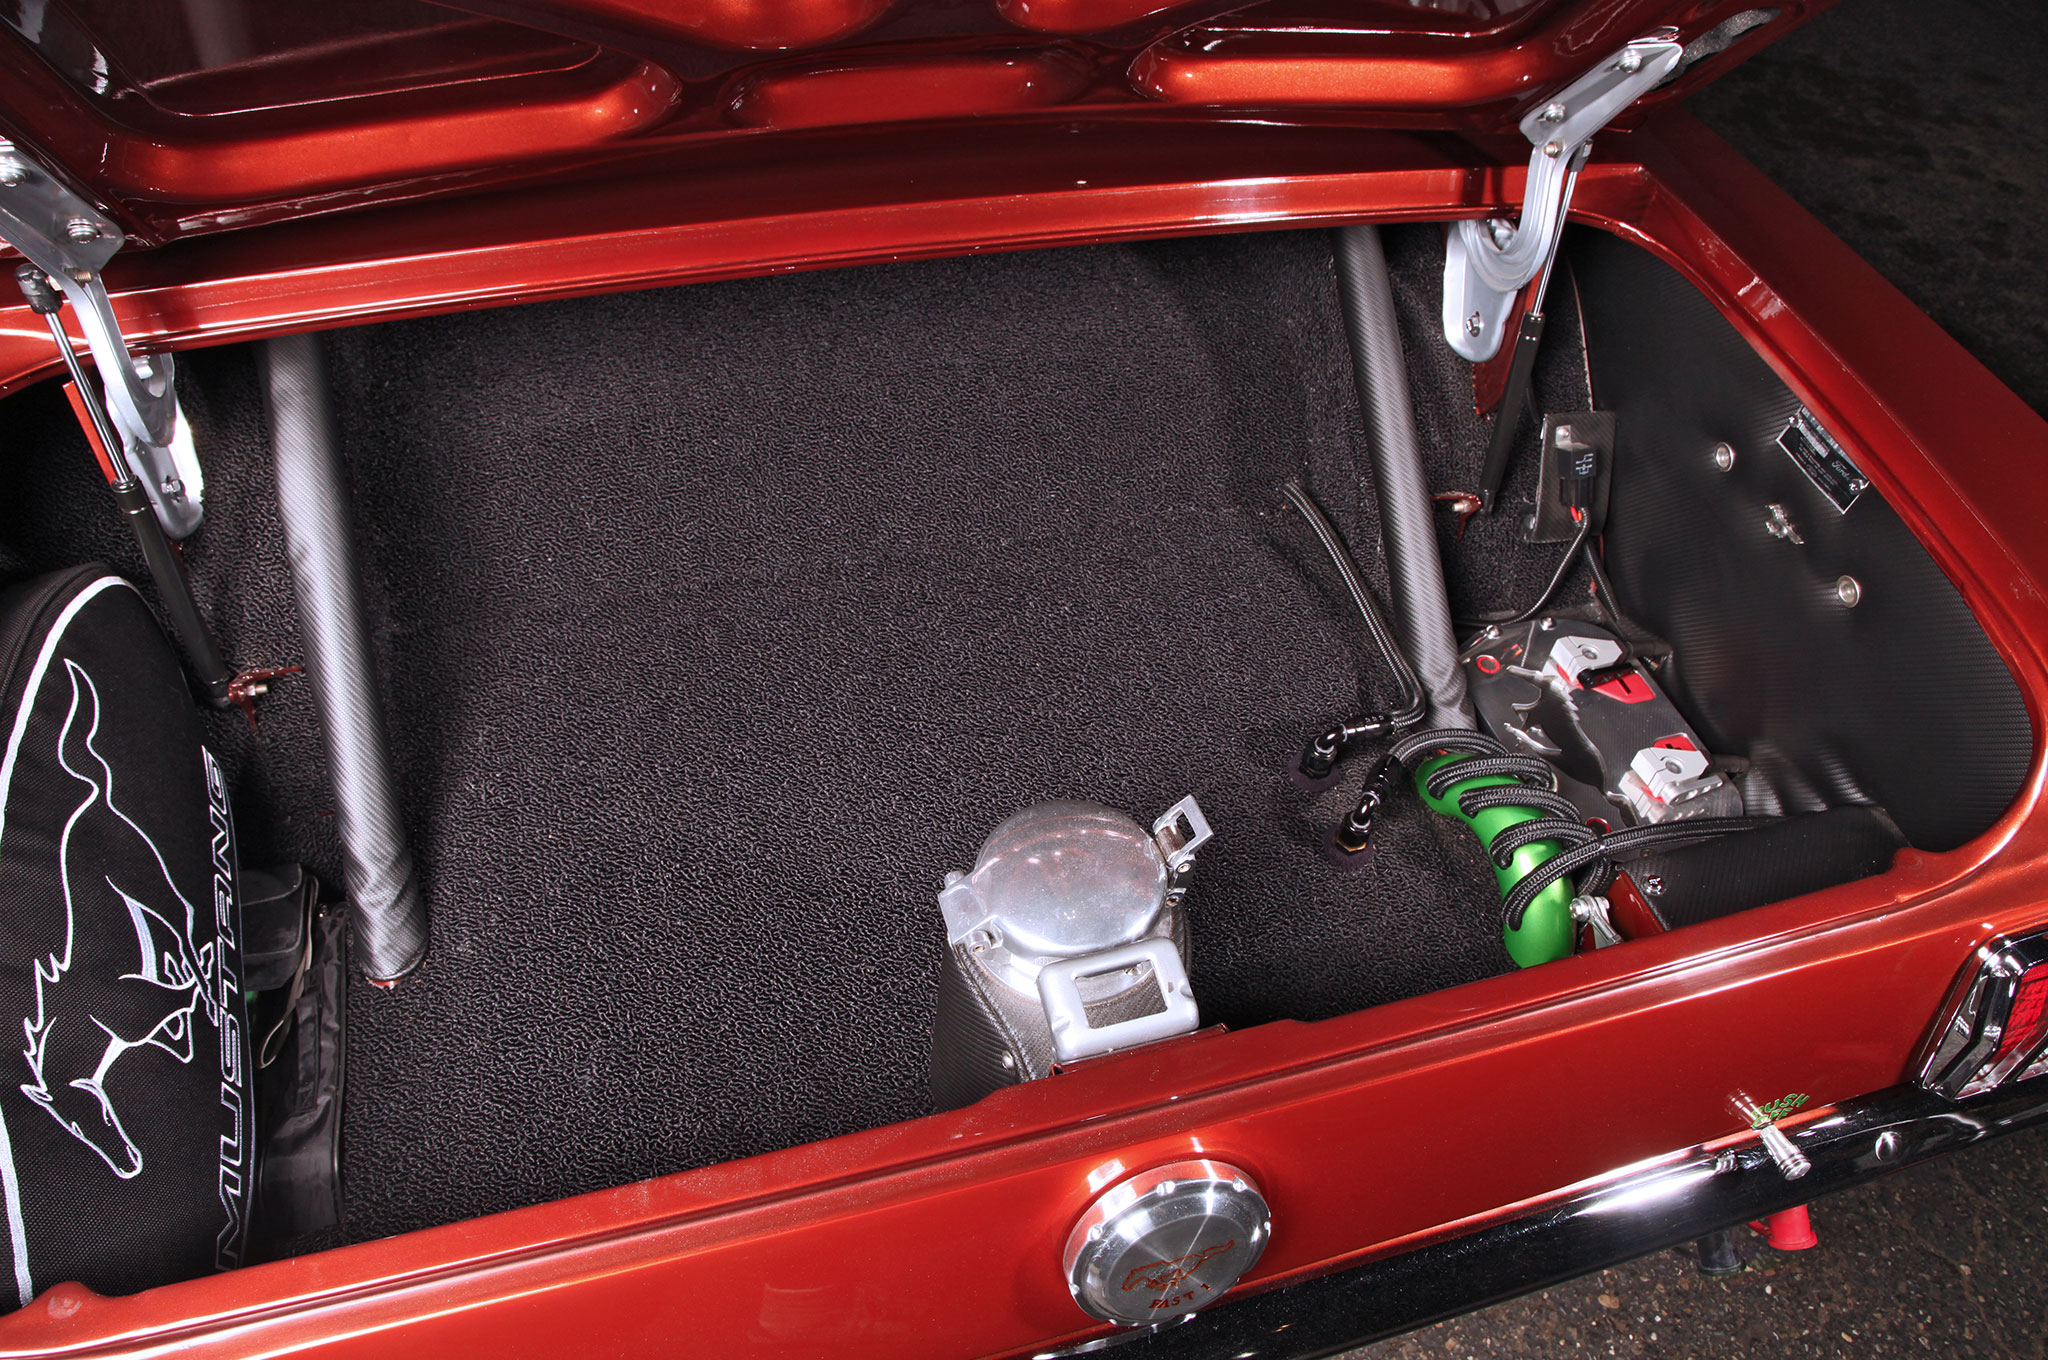 1964 Ford Mustang Trunk